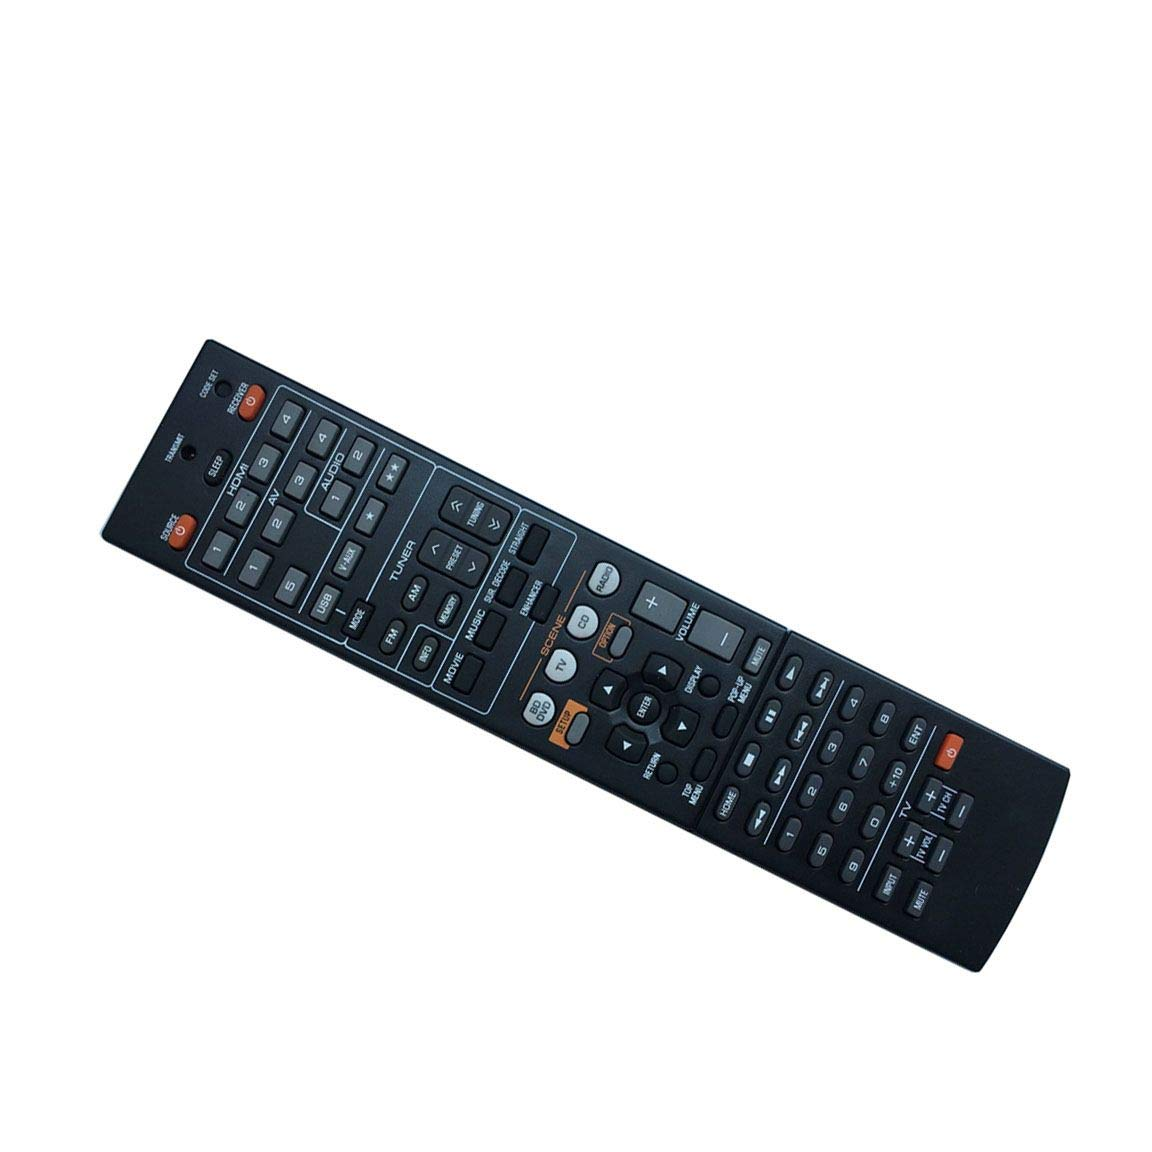 Easy Replacement Remote Control Fit for Yamaha YHT-693BL YHT-893 HTR-6063 RX-V675 RX-V373 AV A/V Receiver by EREMOTE